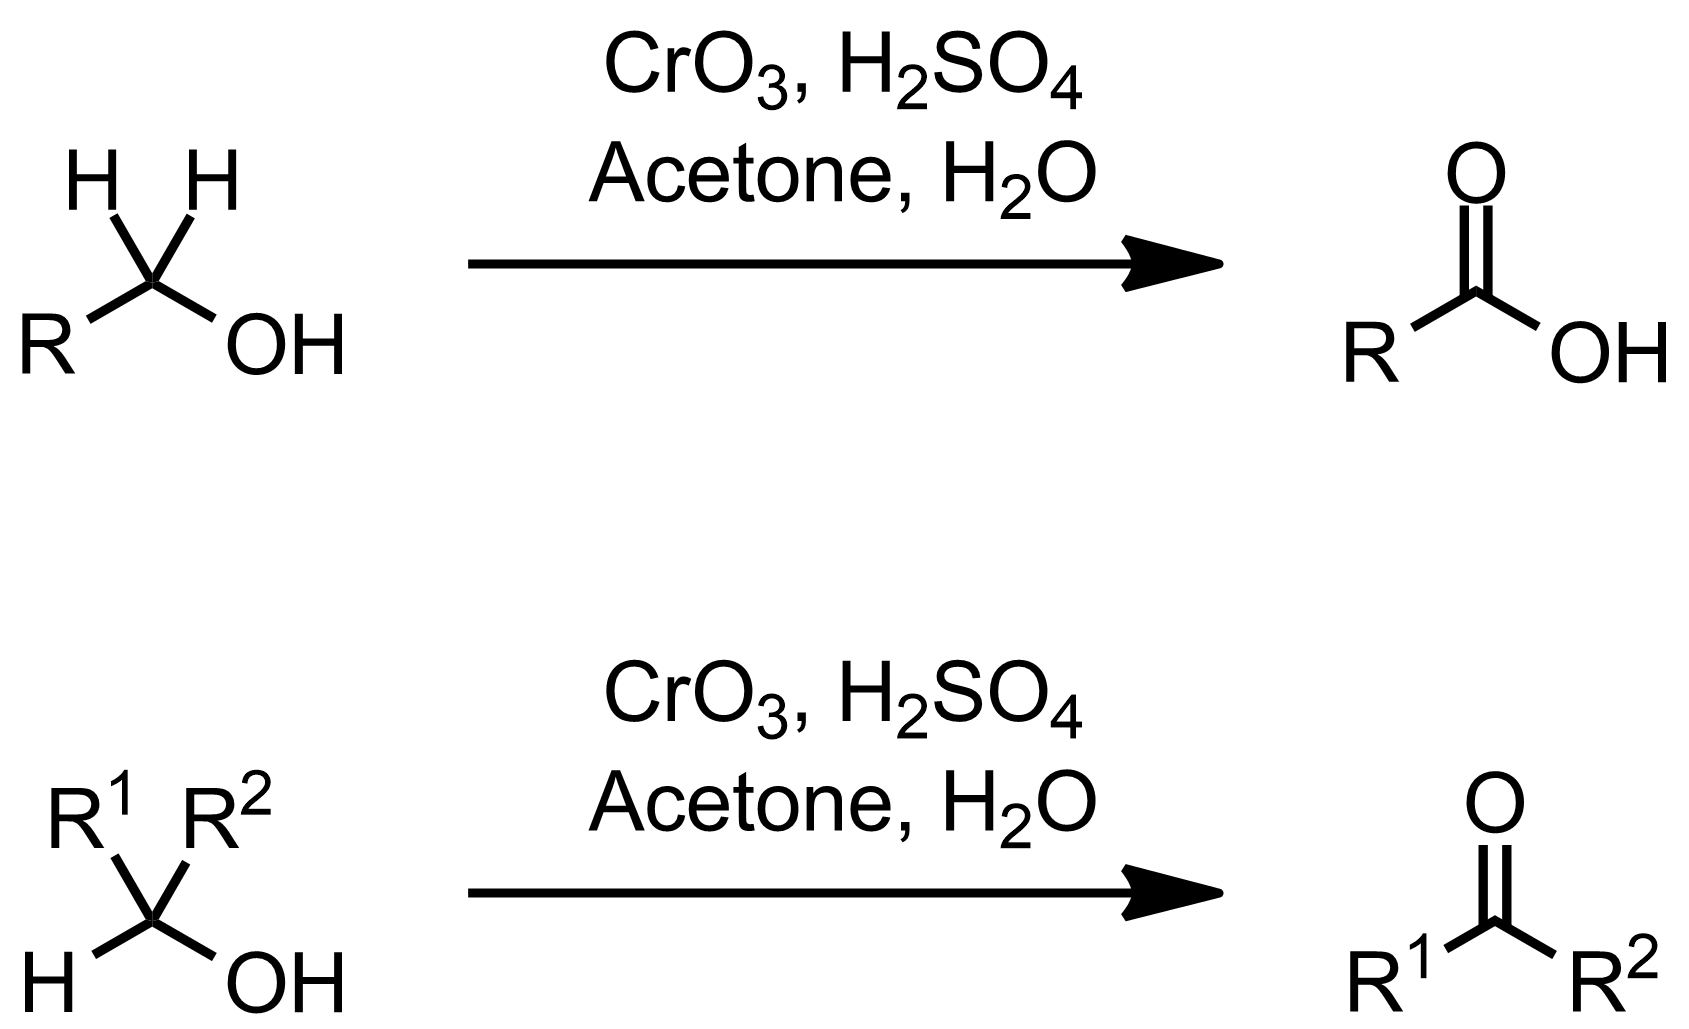 Schematic representation of the Jones Oxidation.